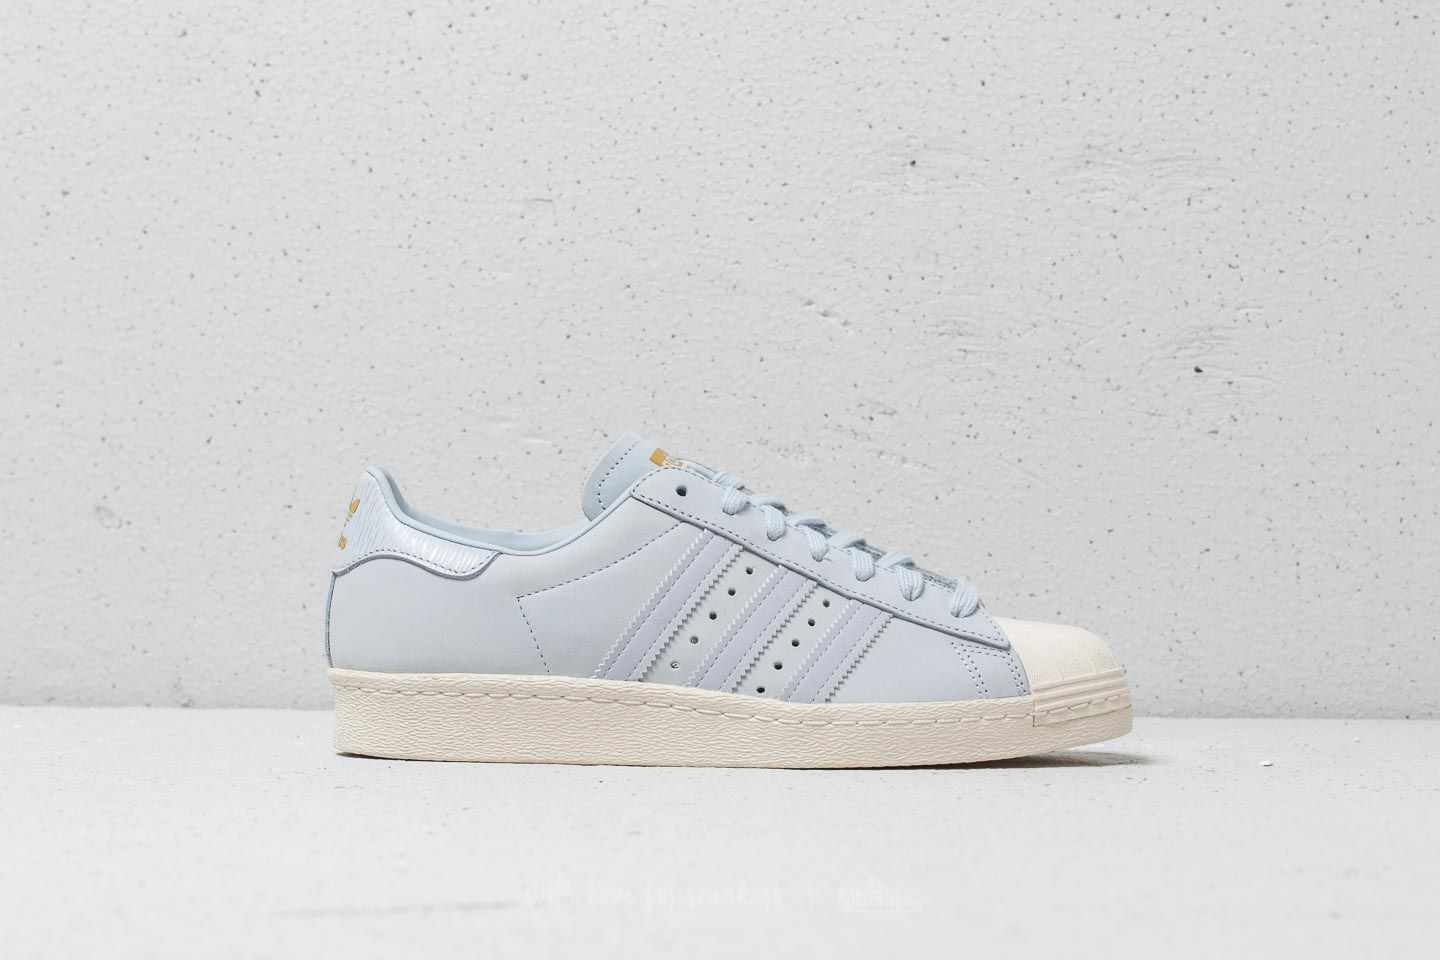 haute couture 67c8c 4a9d8 adidas Superstar 80s W Aero Blue/ Aero Blue/ Off White | Footshop